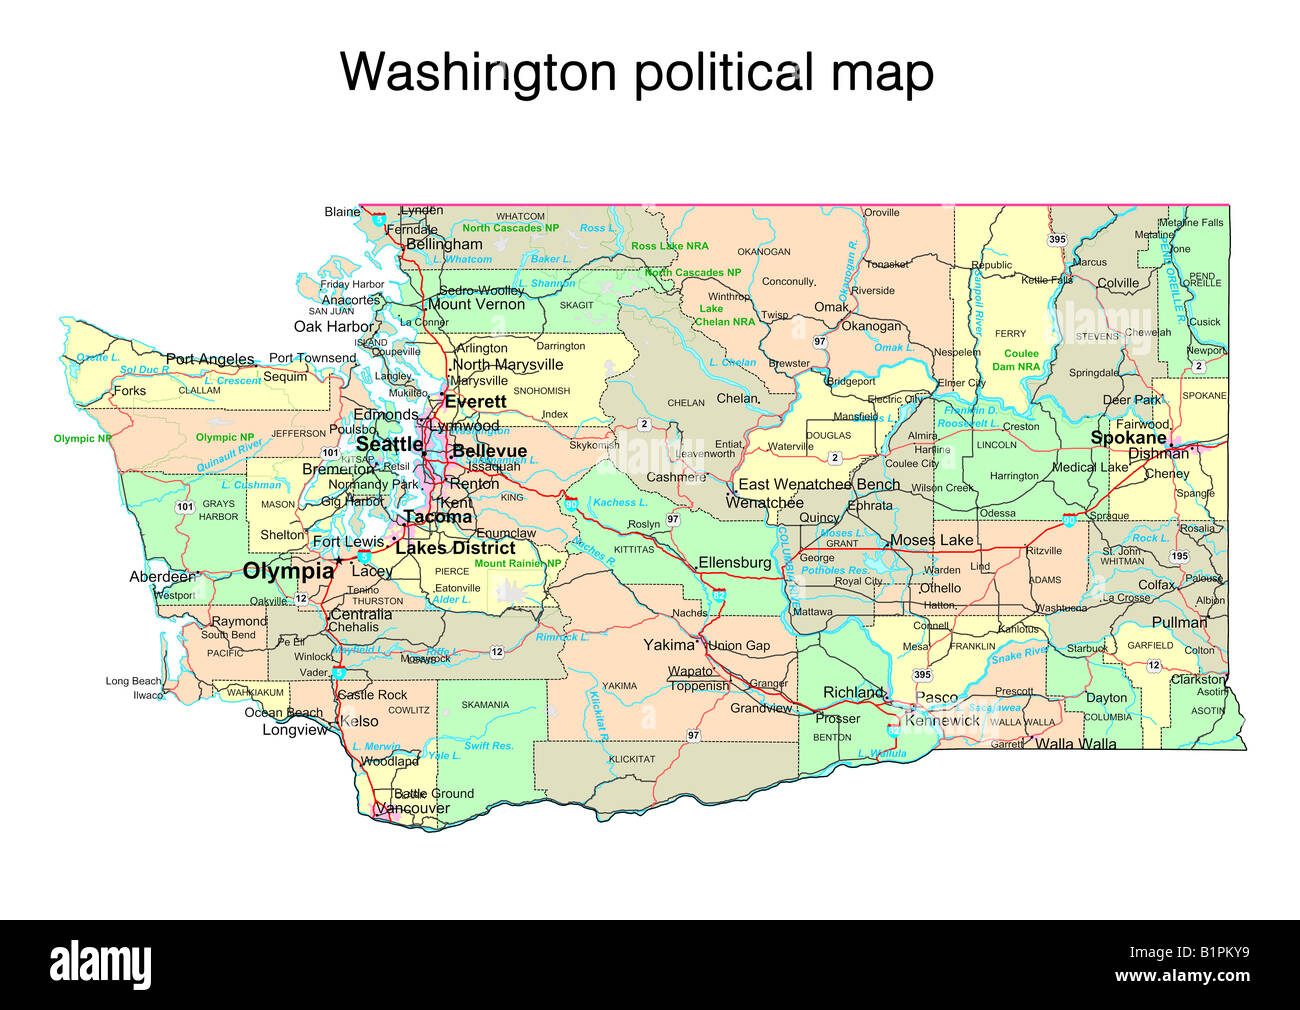 Washington State Political Map Stock Photo Royalty Free Image - Washinton state map